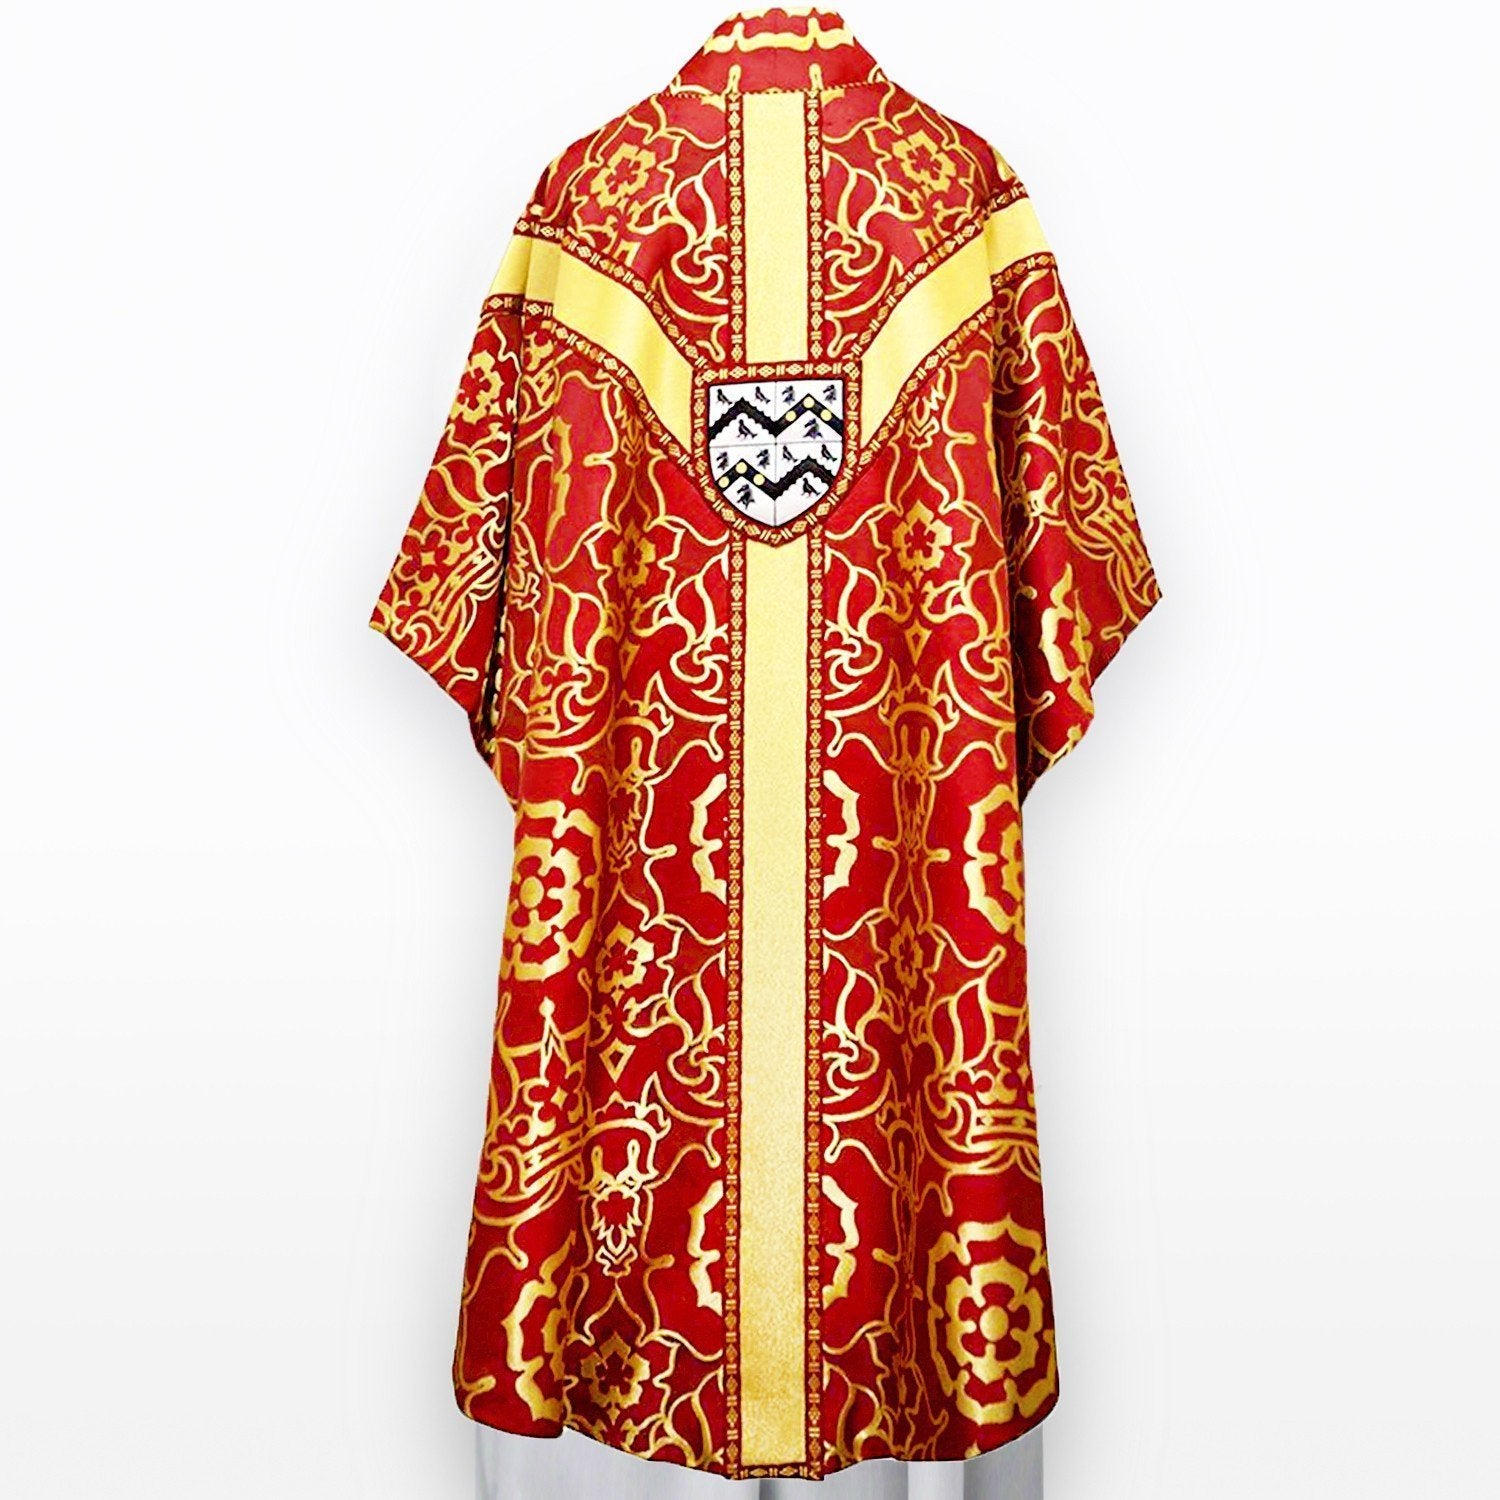 Embroidered Full Gothic Chasuble in Red & Gold Coronation - Watts & Co. (international)